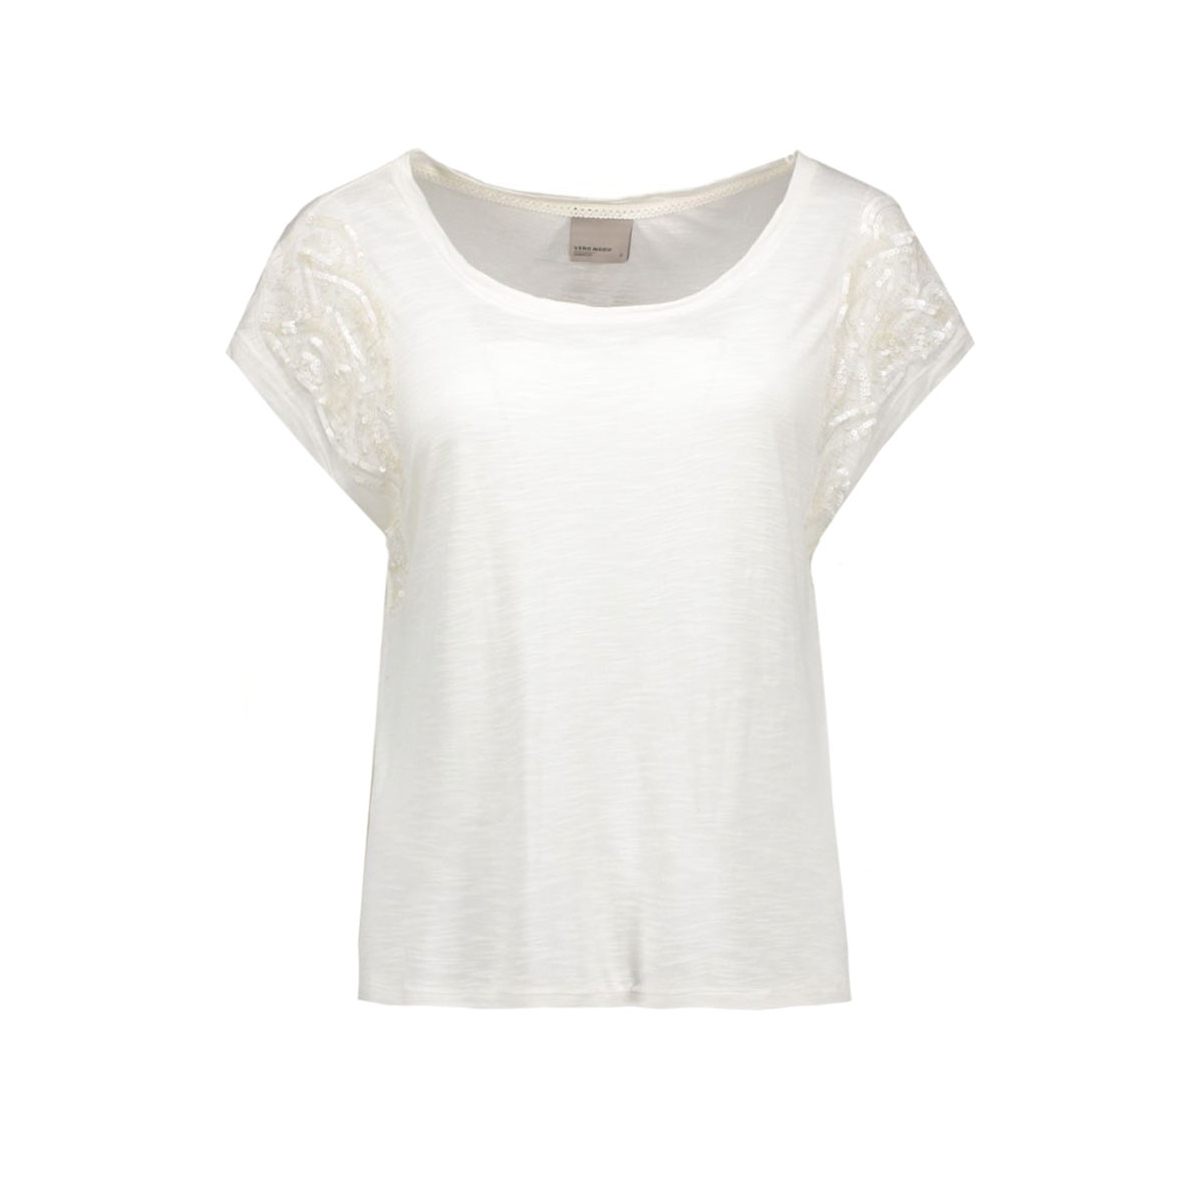 vmtinna s/s top jrs 10162238 vero moda t-shirt snow white